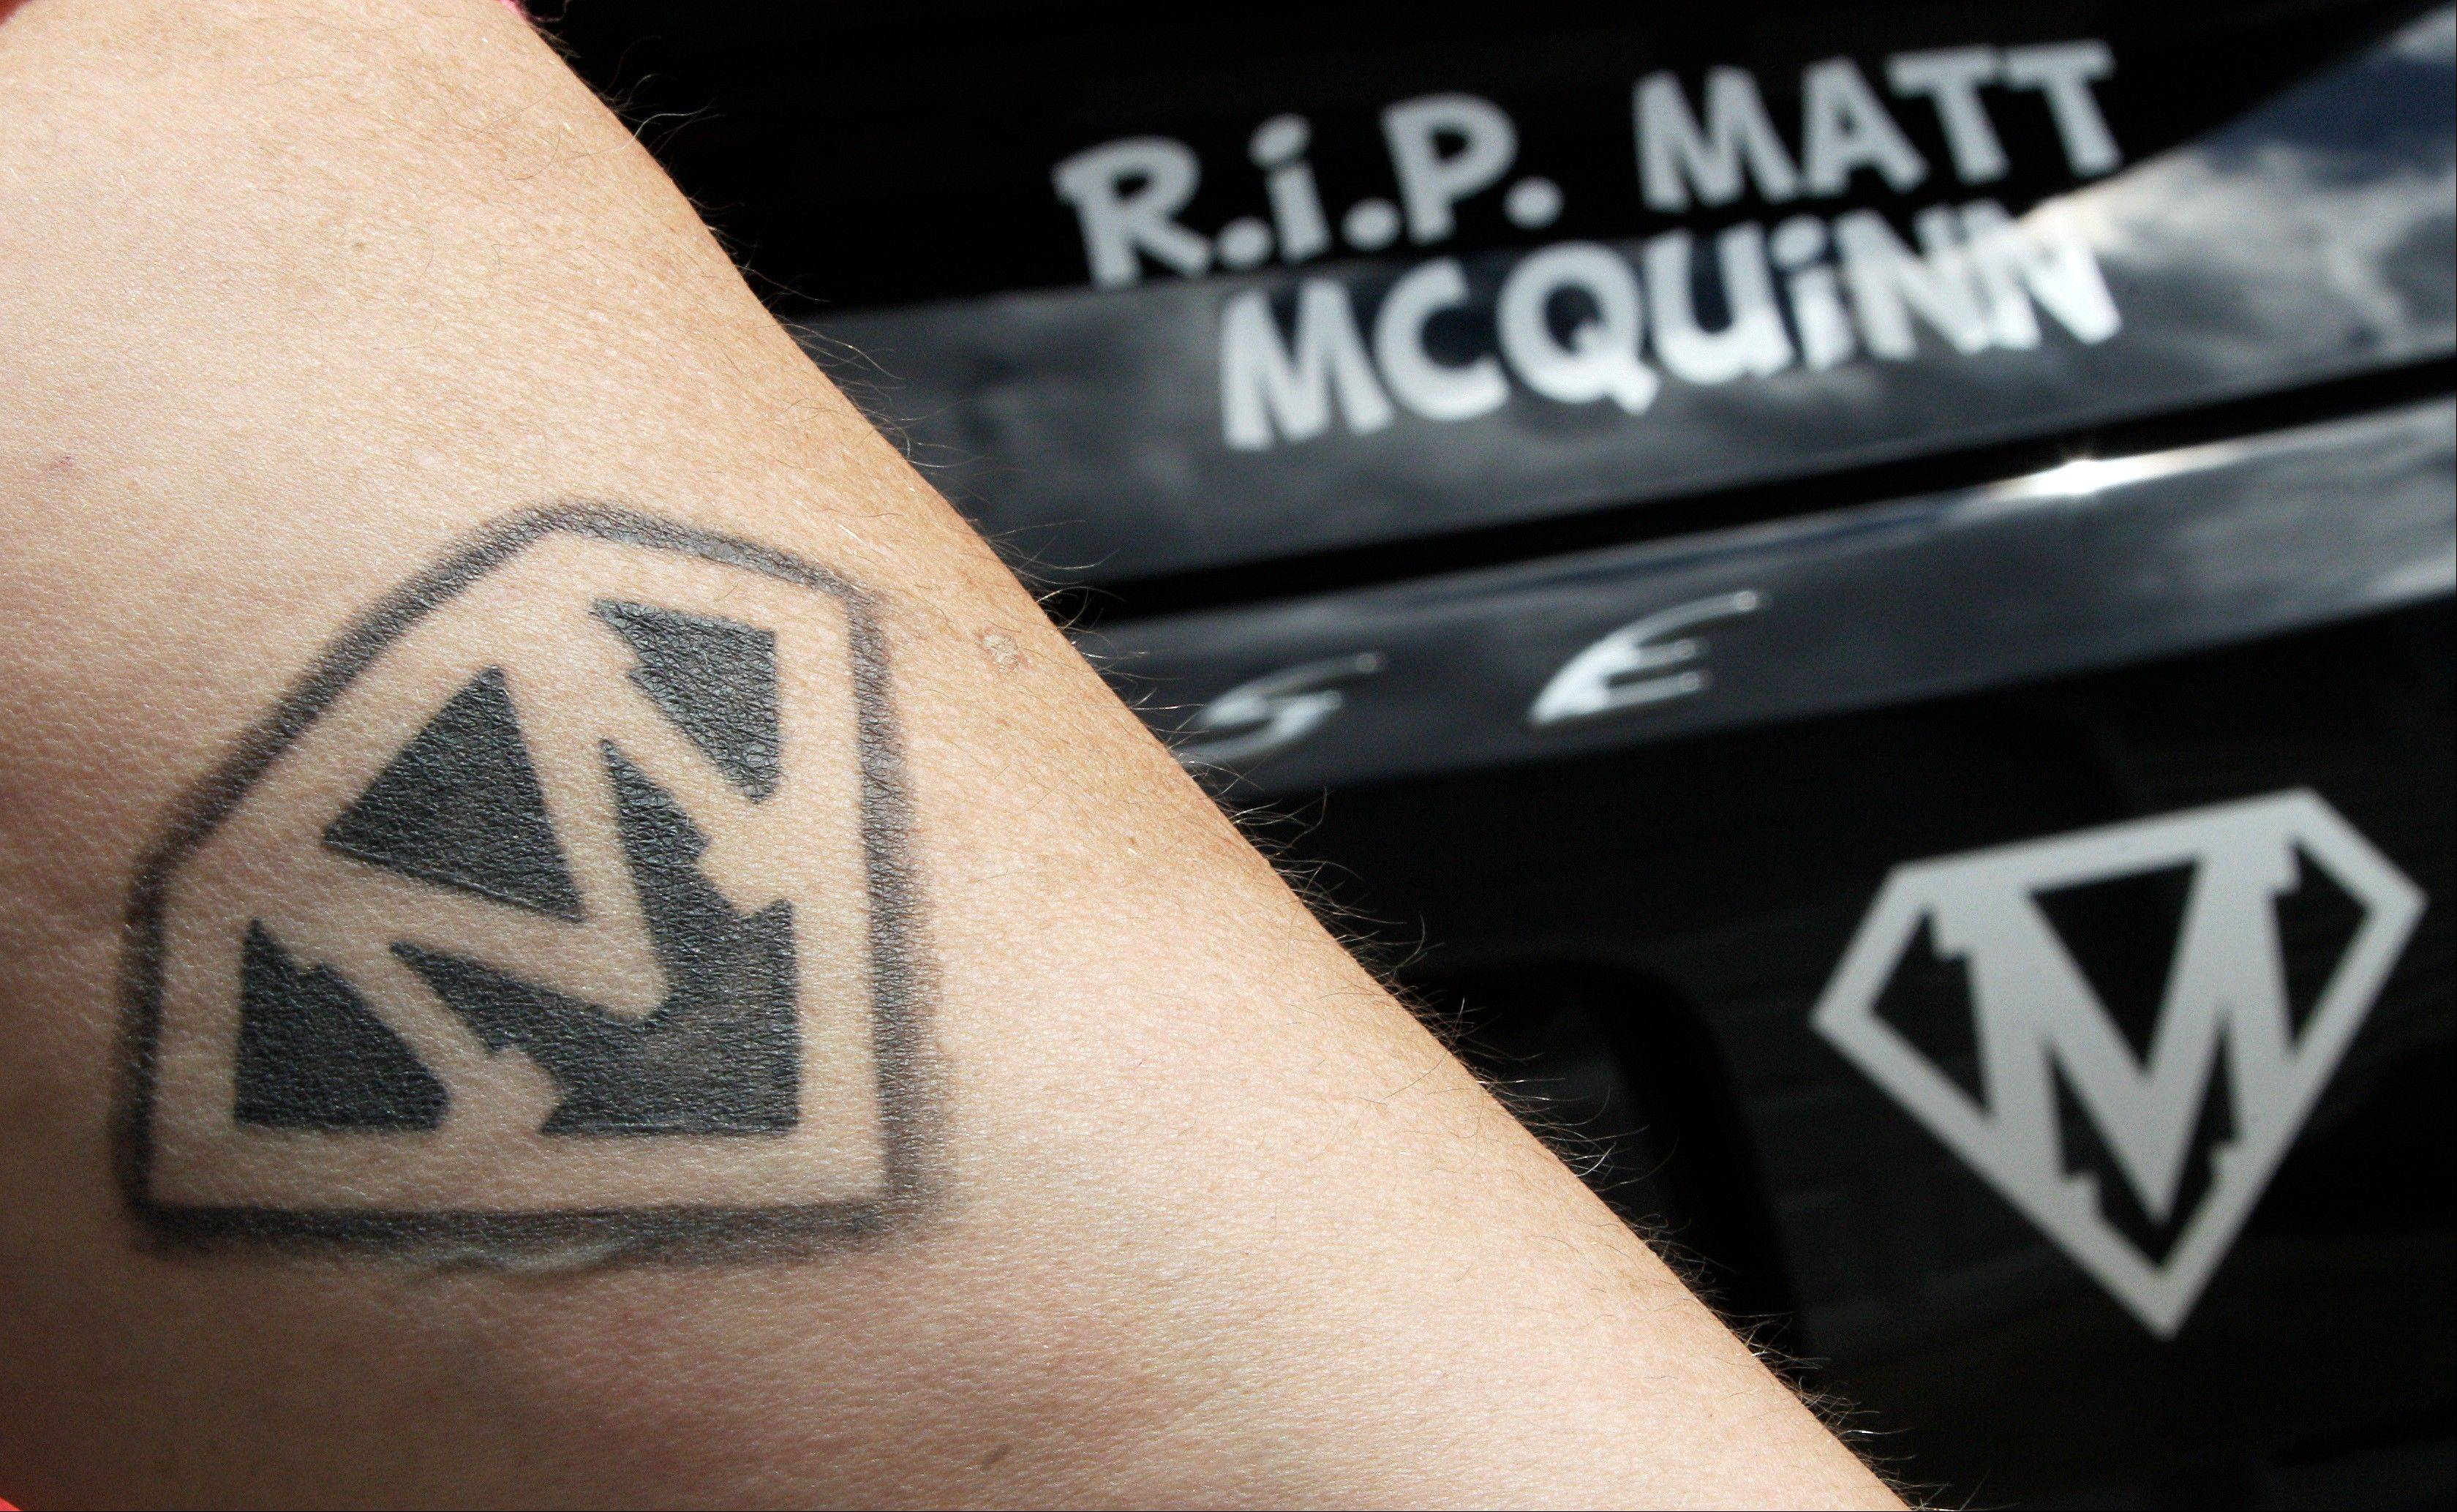 Jerri Jackson, mother of Aurora, Colo. theater shooting victim Matthew McQuinn, shows her tattoo of his initials as she stands next to her car with decals in memory of her son in Springfield, Ohio on Sunday, July 14, 2013.